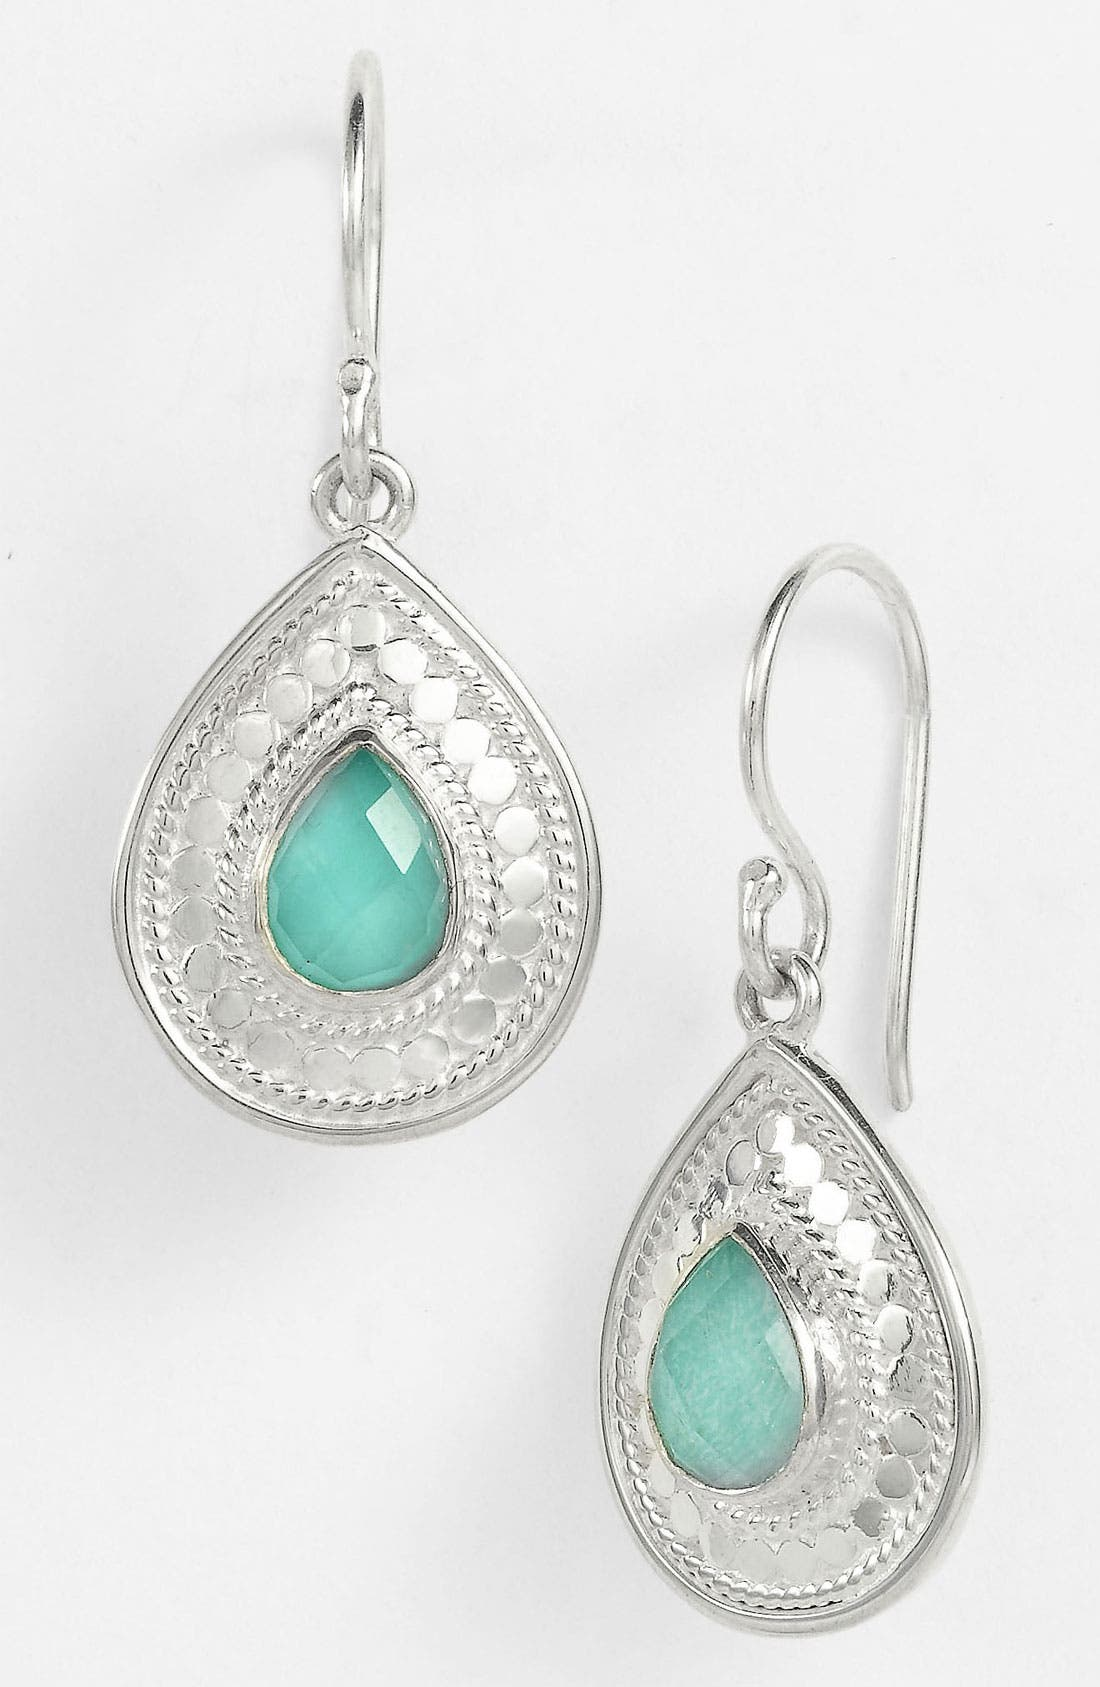 Main Image - Anna Beck 'Gili' Teardrop Earrings